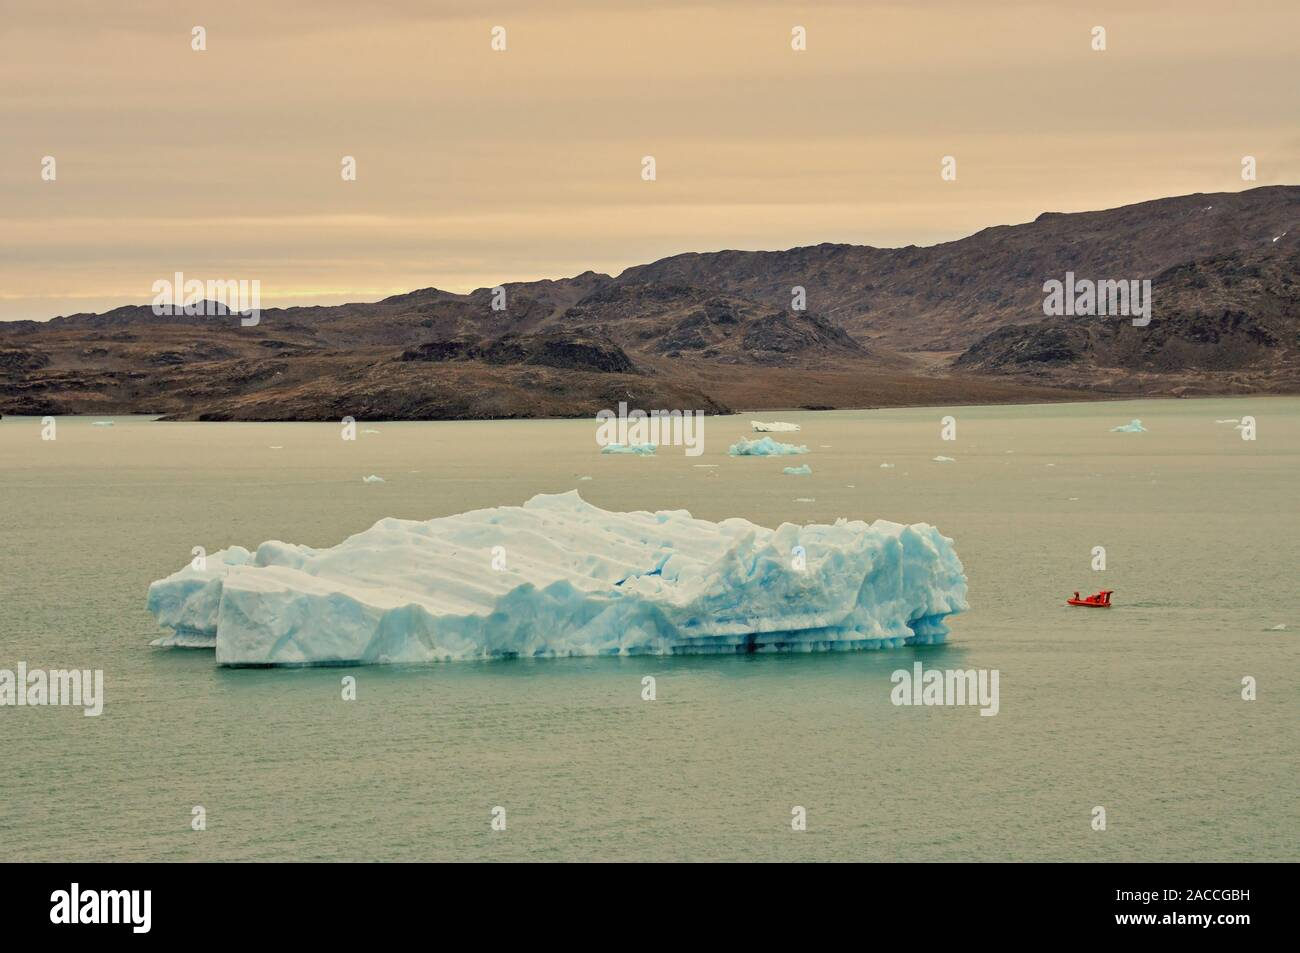 A small boat beside an iceberg in Krossfjorden, off the west coast of Spitsbergen, in evening light. Stock Photo